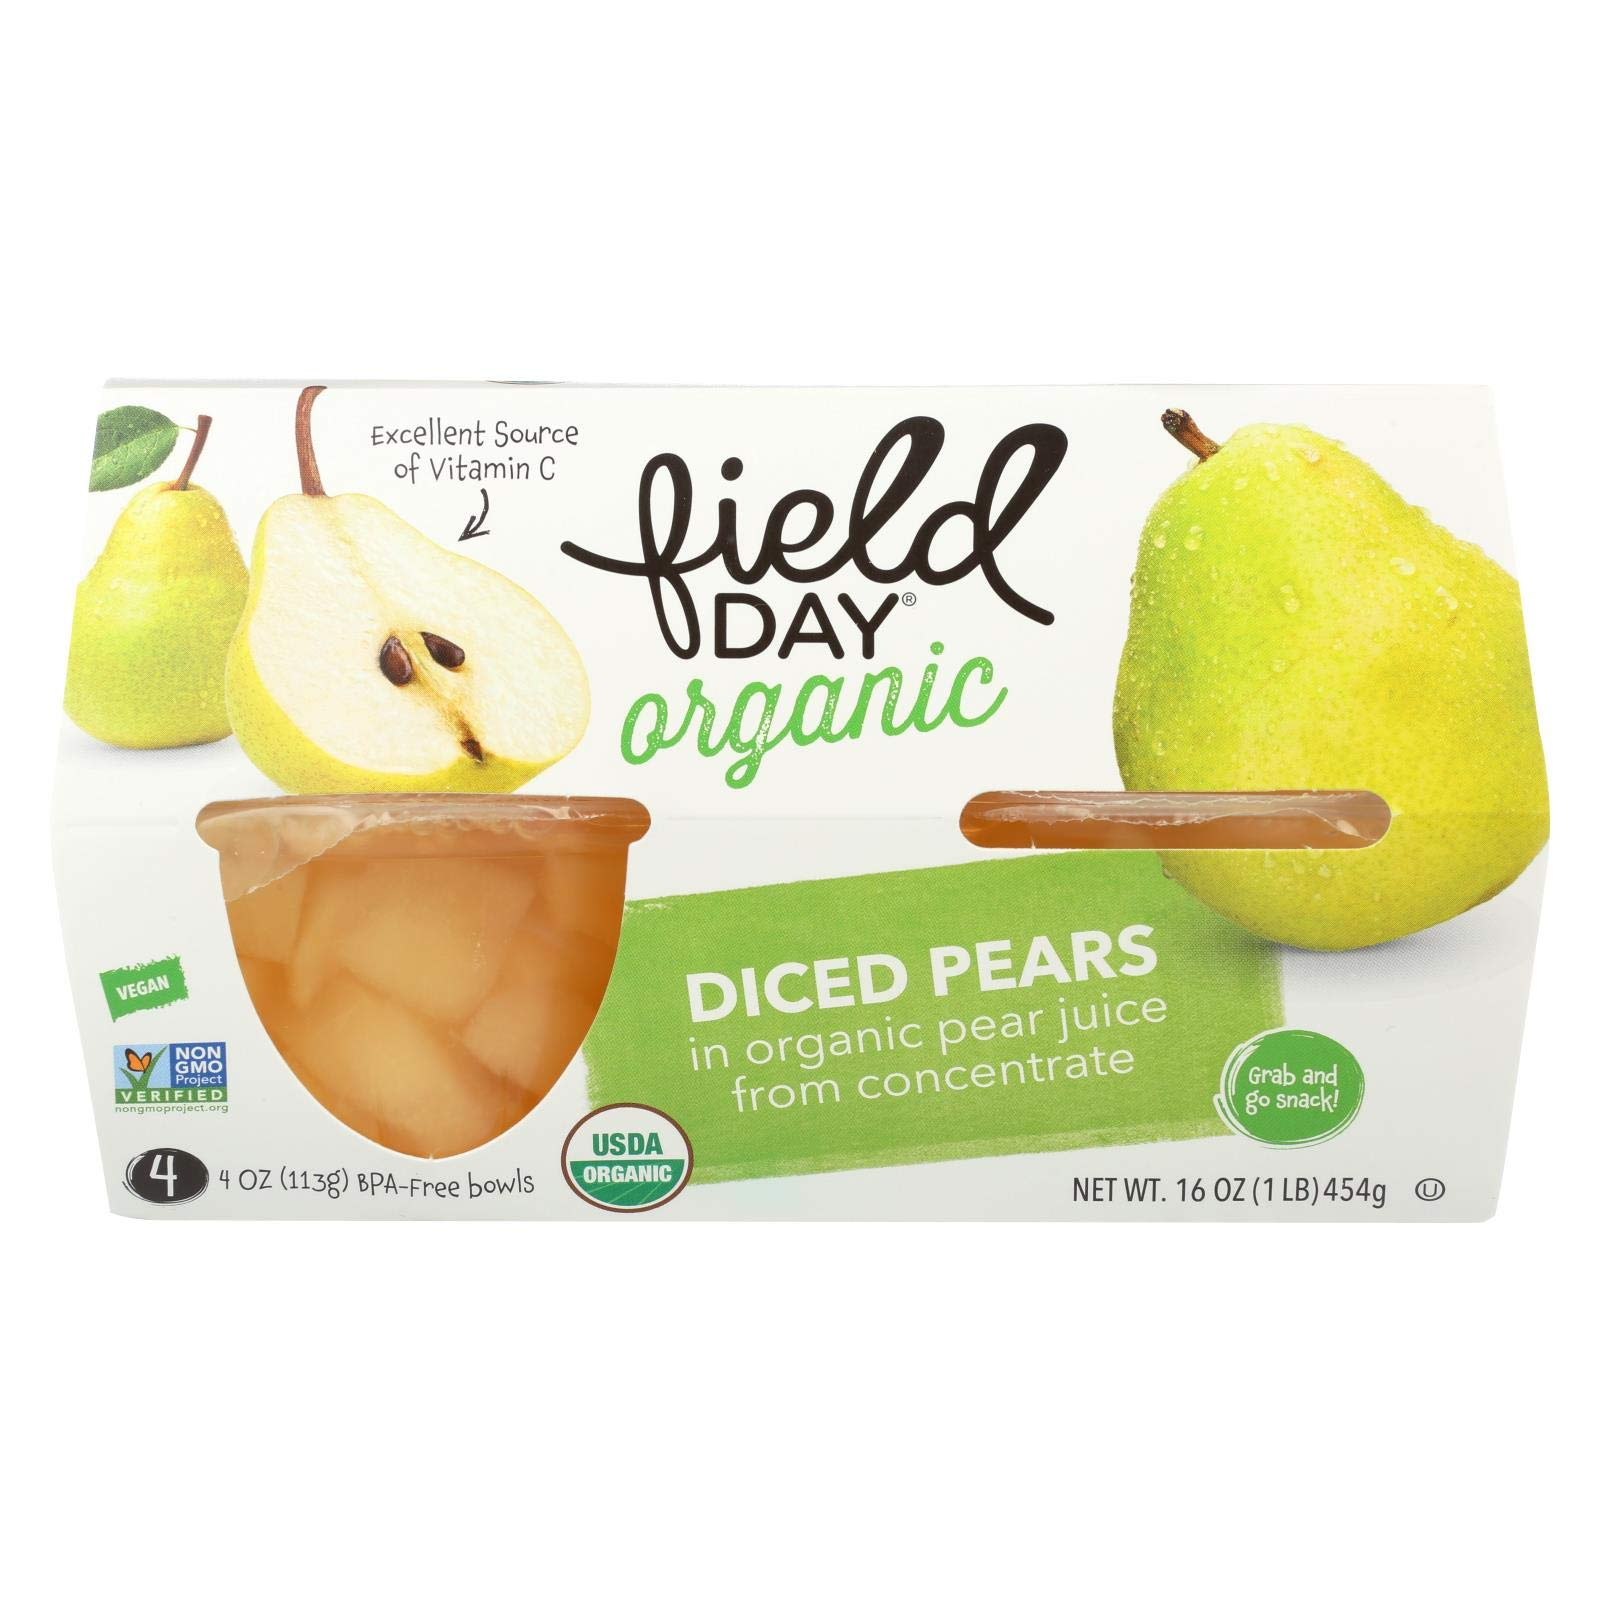 Pears 95 percent organic Diced Cup 4 Oz - Pack of 6 - SPu1019900 by Field Day